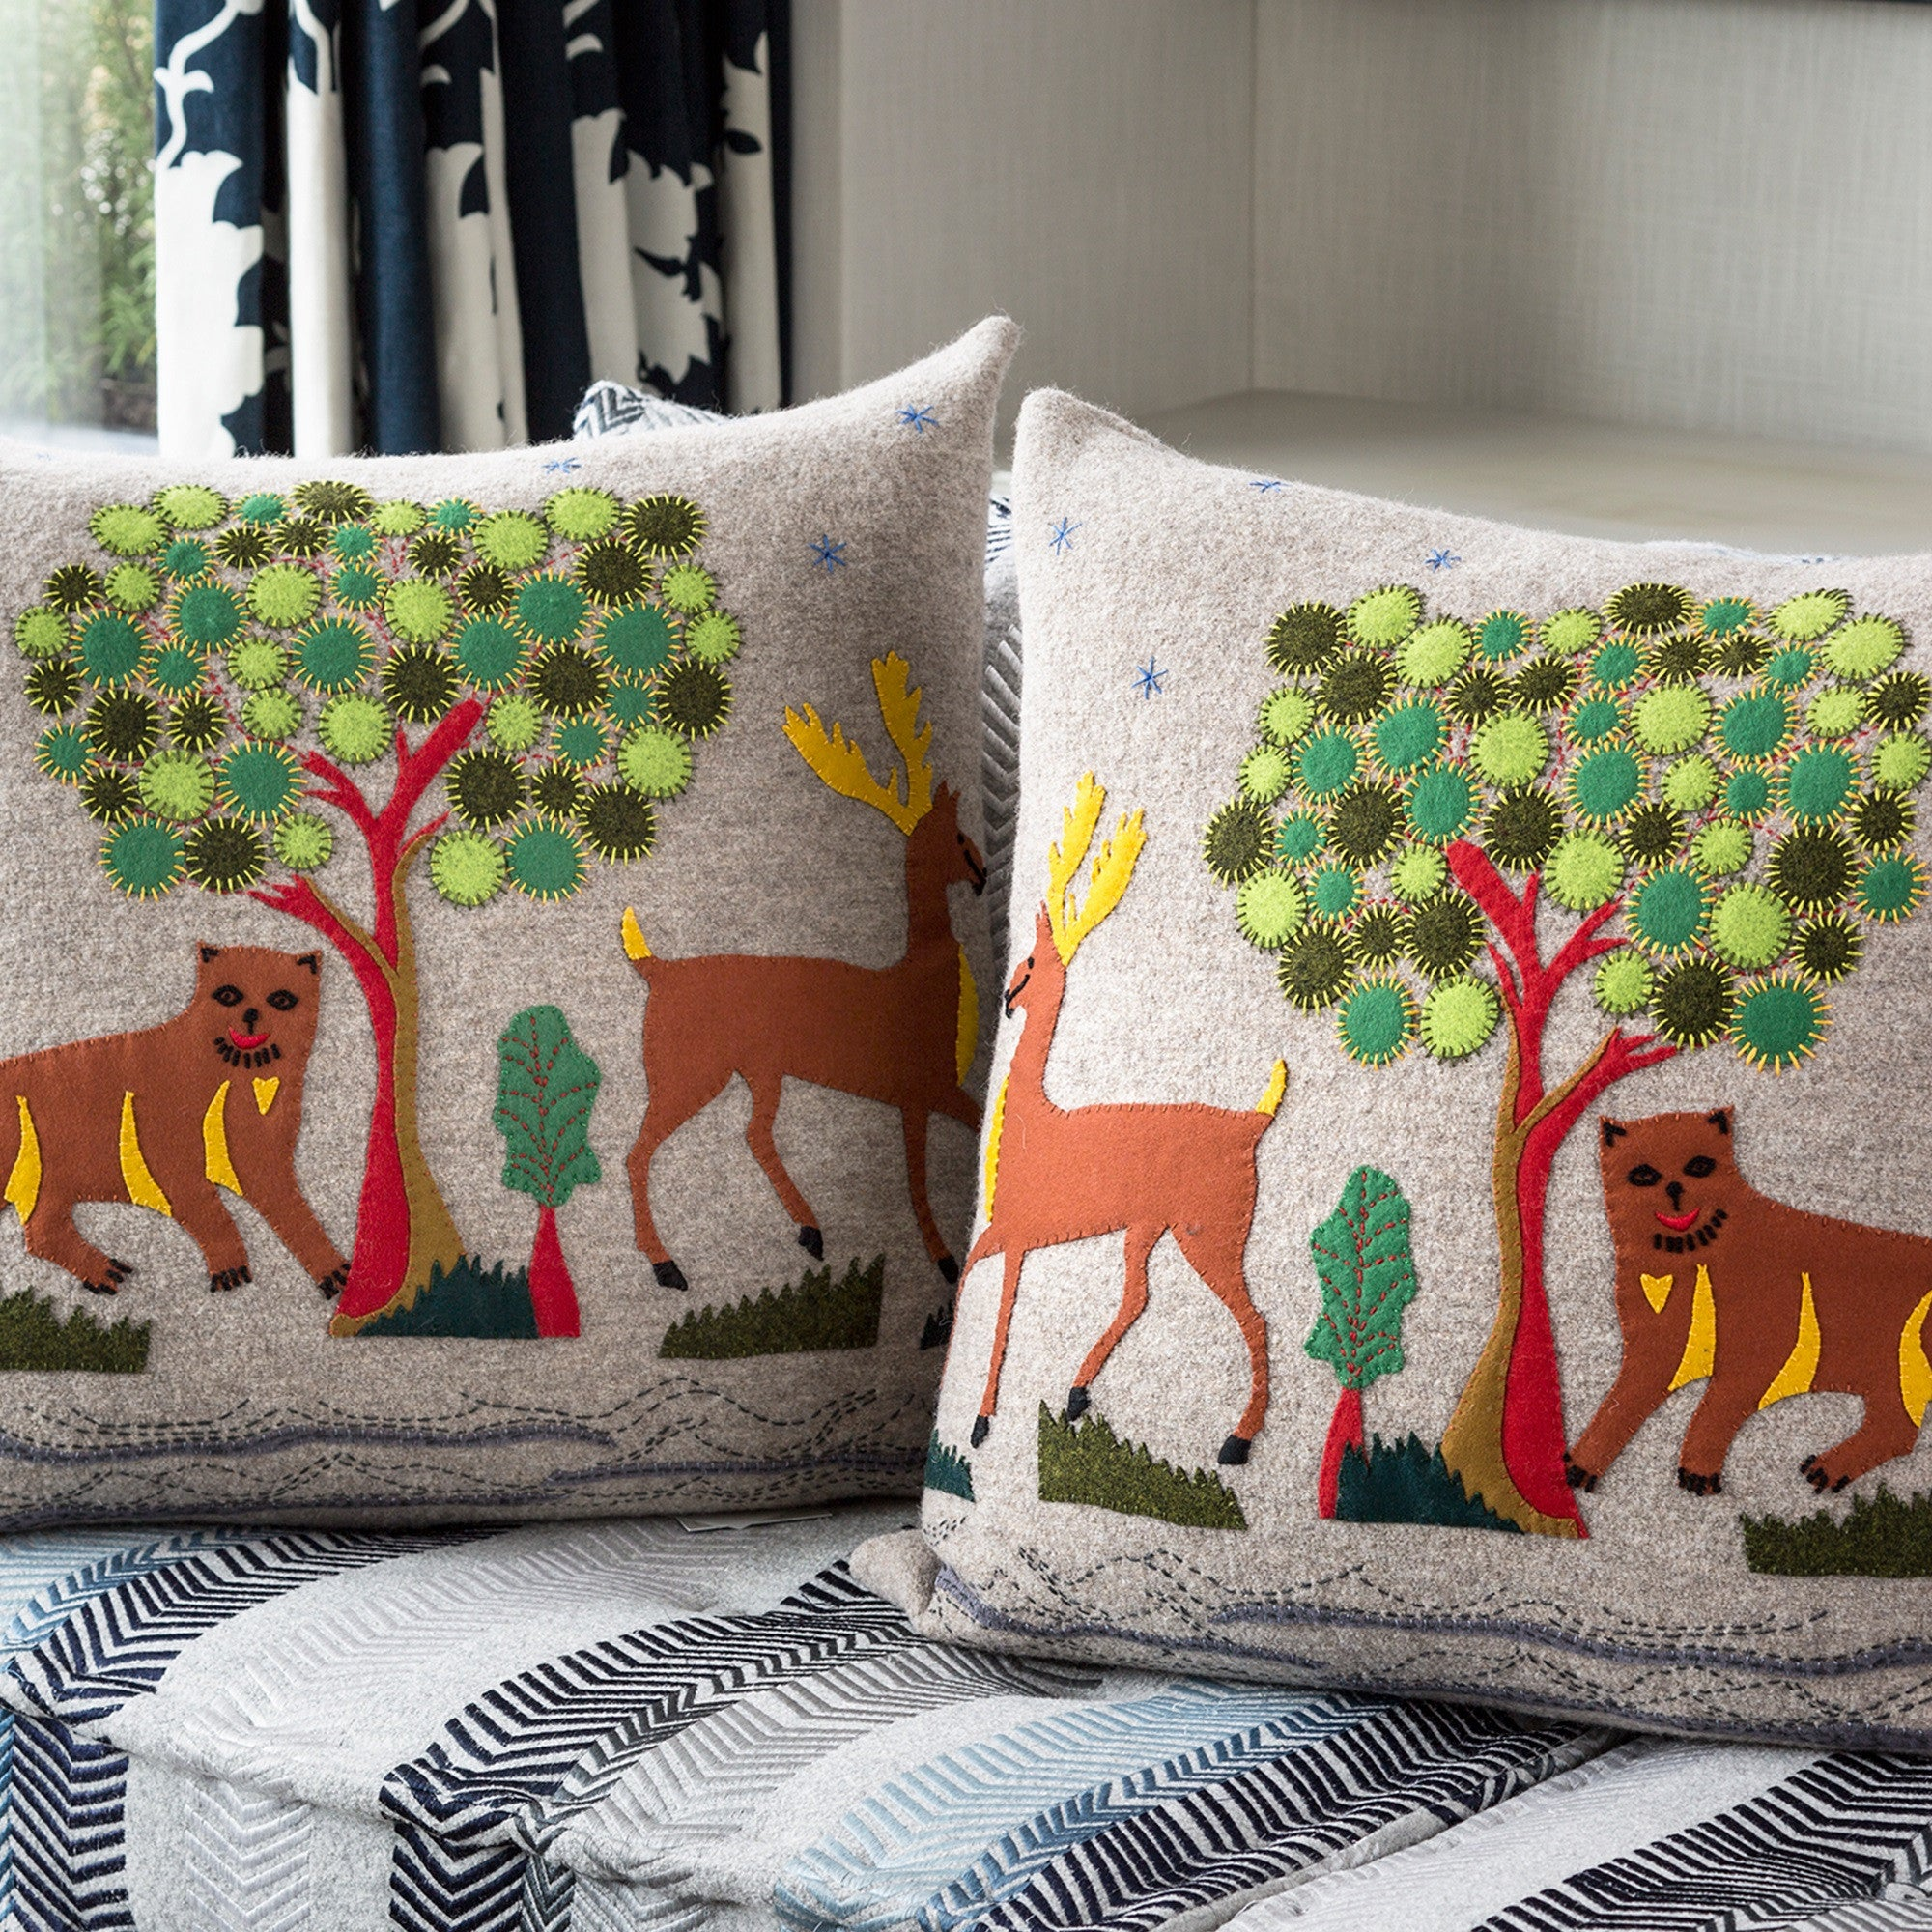 Kit Kemp's 'Folk' Pair of Cushions